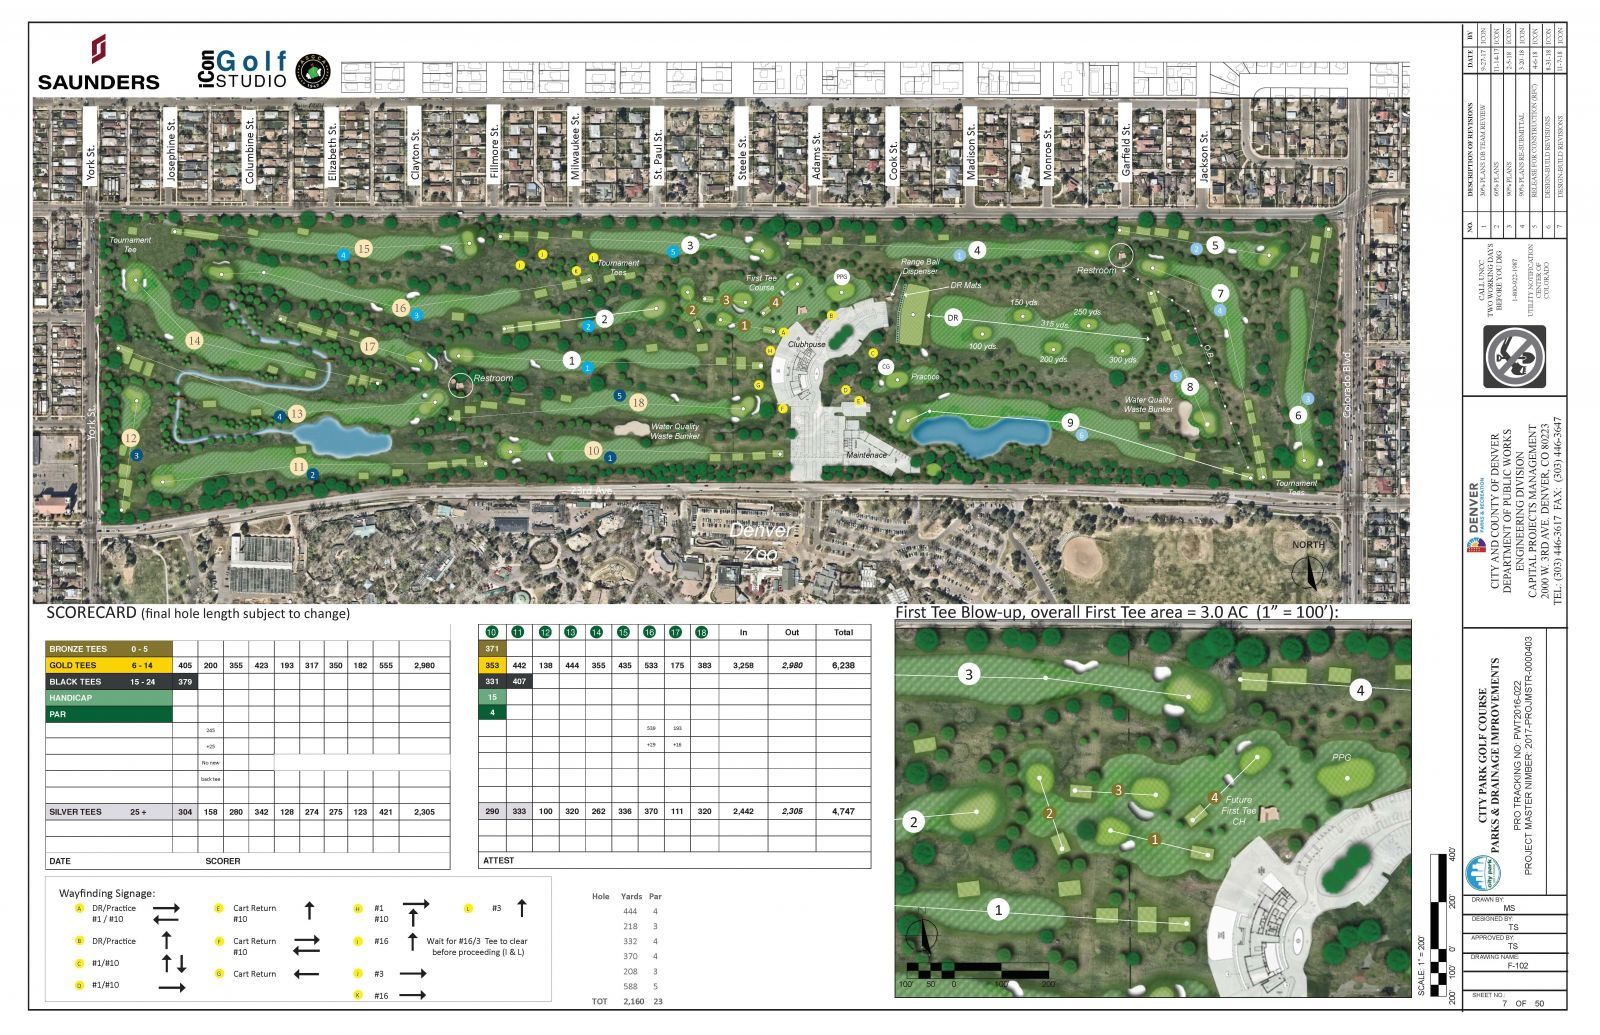 City Park Golf Course layout map and scorecard